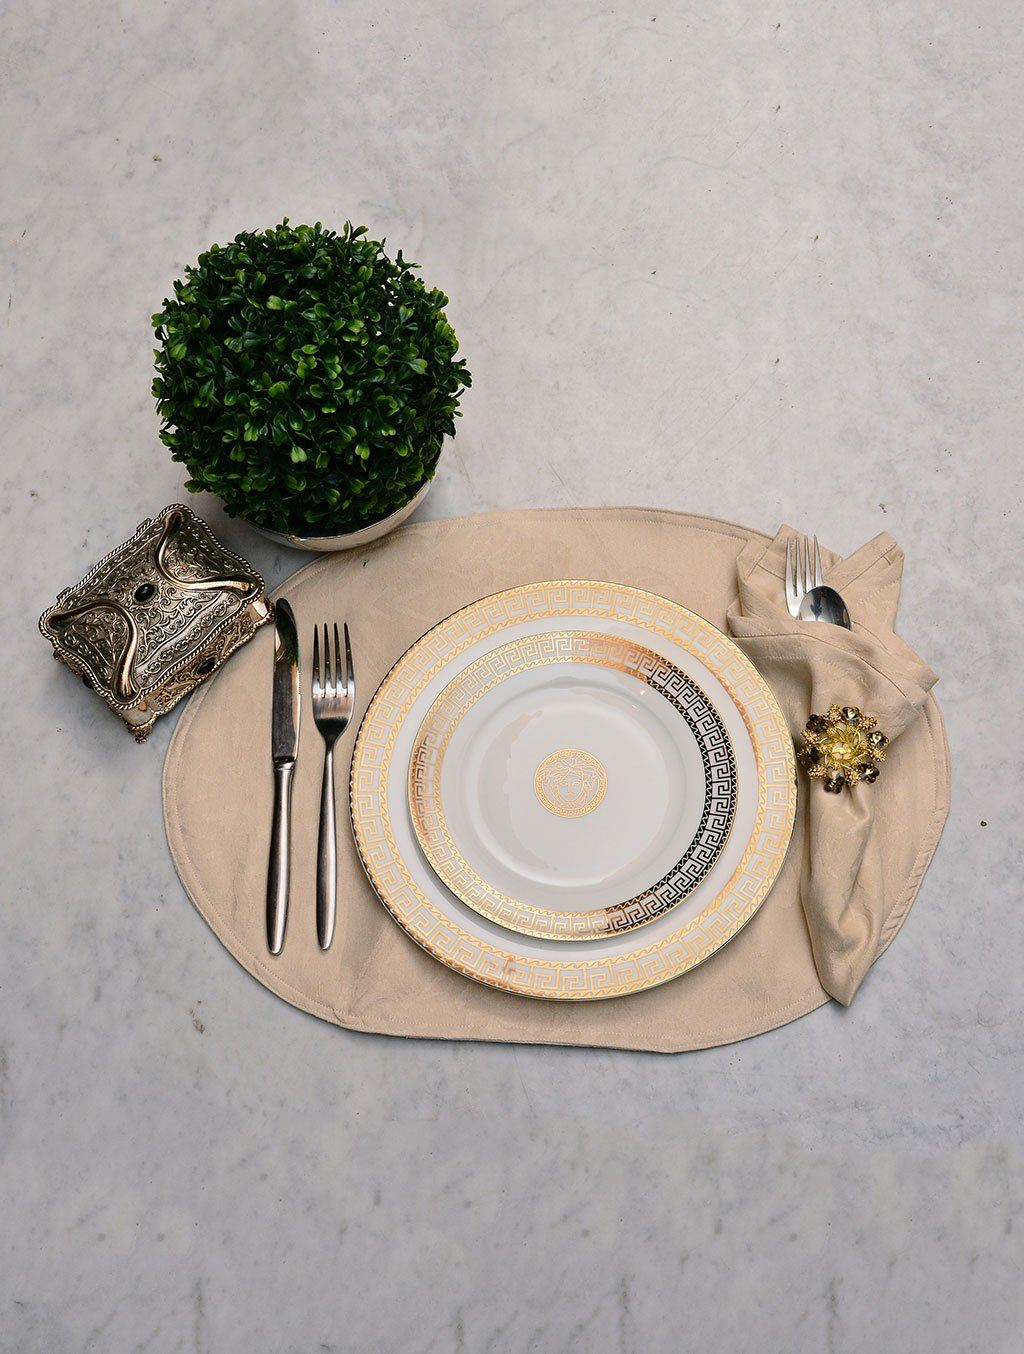 Kitchen Linen Jacquard Cream Kitchen Accessories HOMKITLIN Place Mat